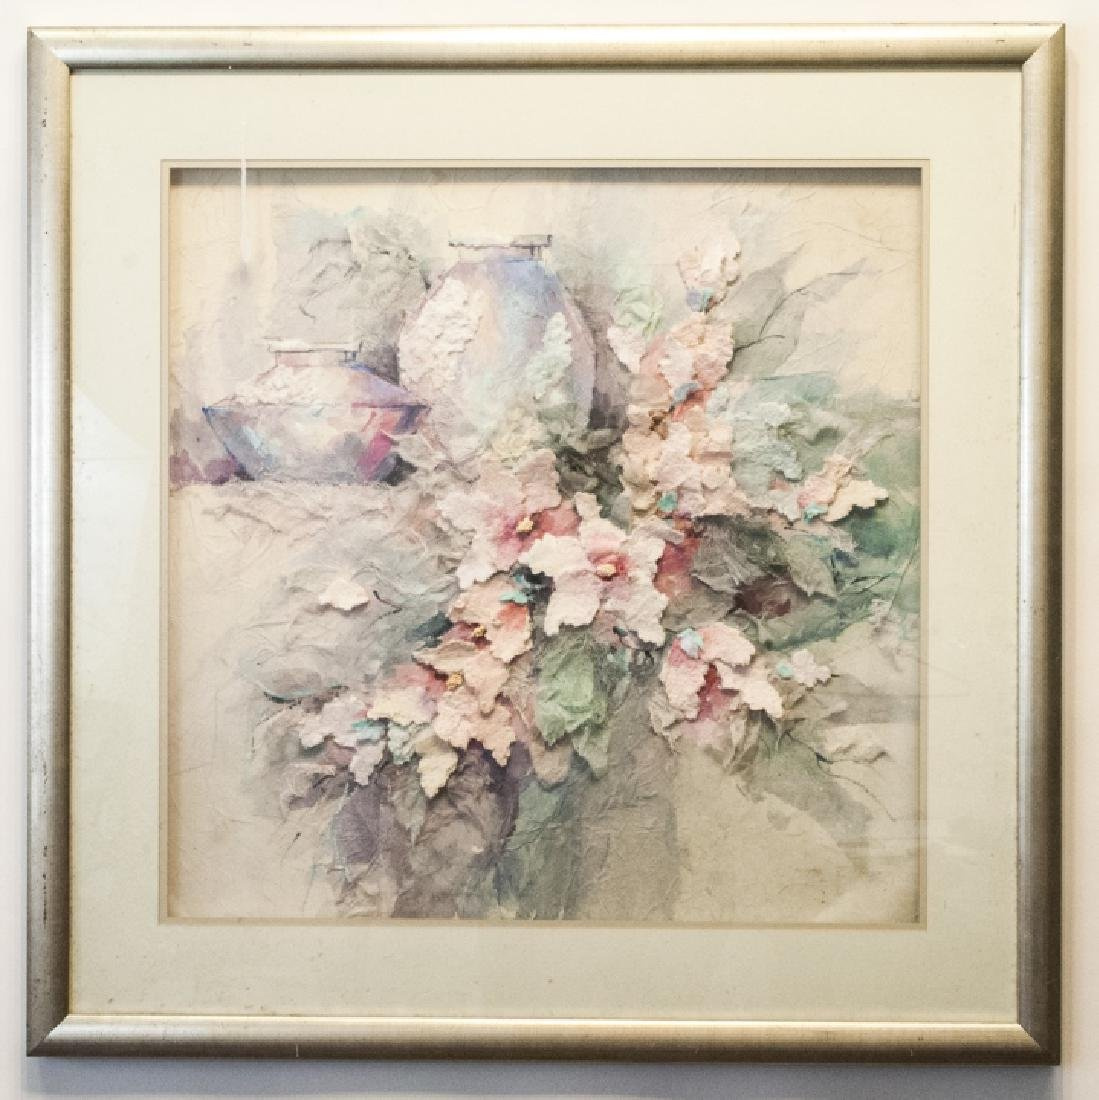 Multi Media Framed Floral Art in Shadowbox